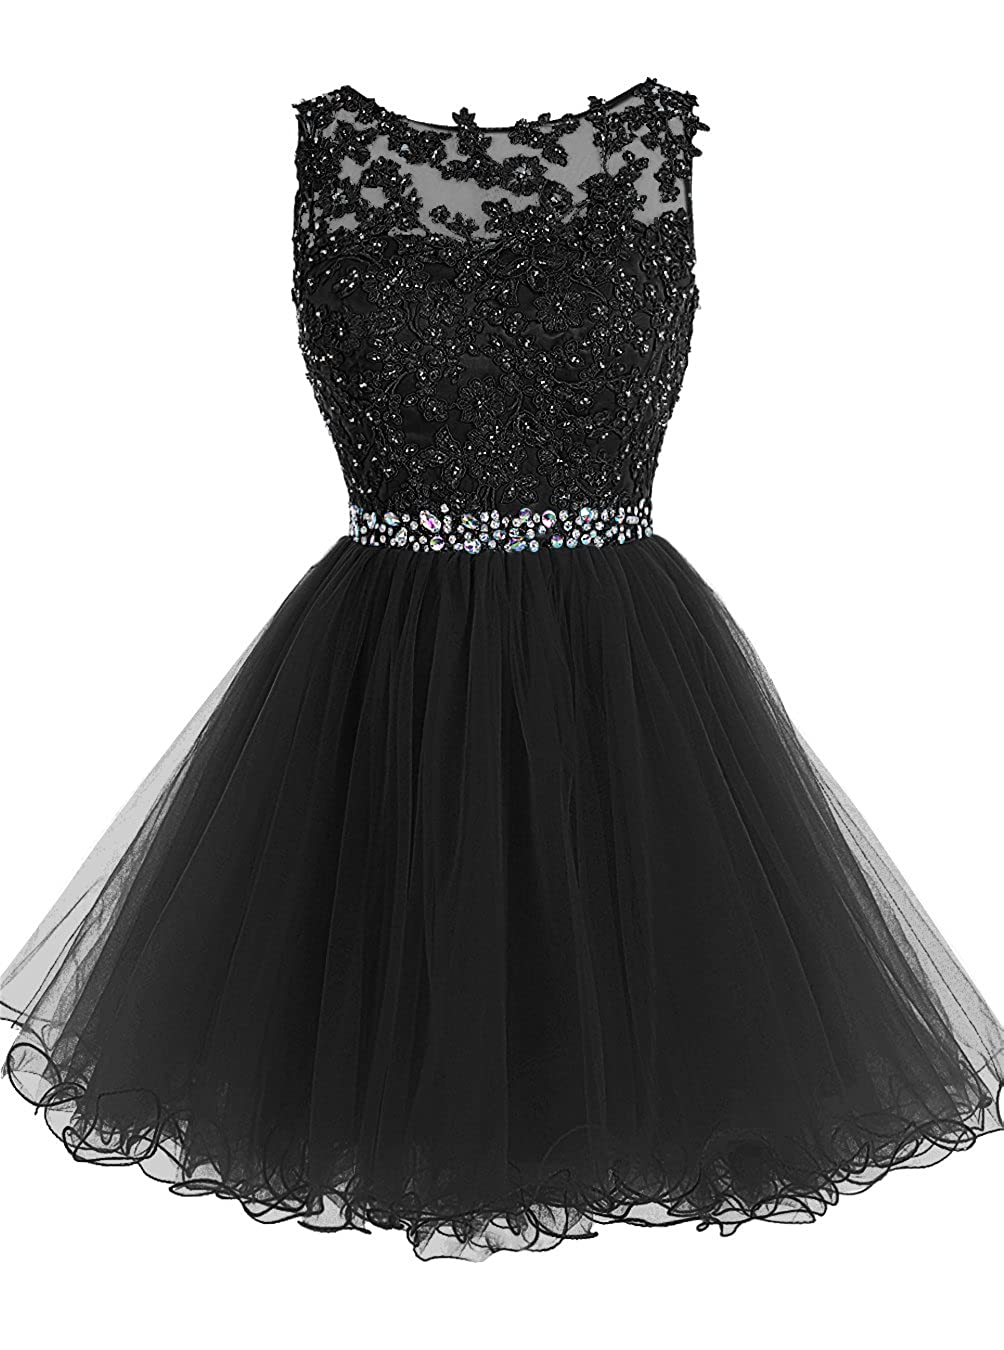 Black TideClothes Short Beaded Homecoming Dress Tulle Applique Prom Party Gowns